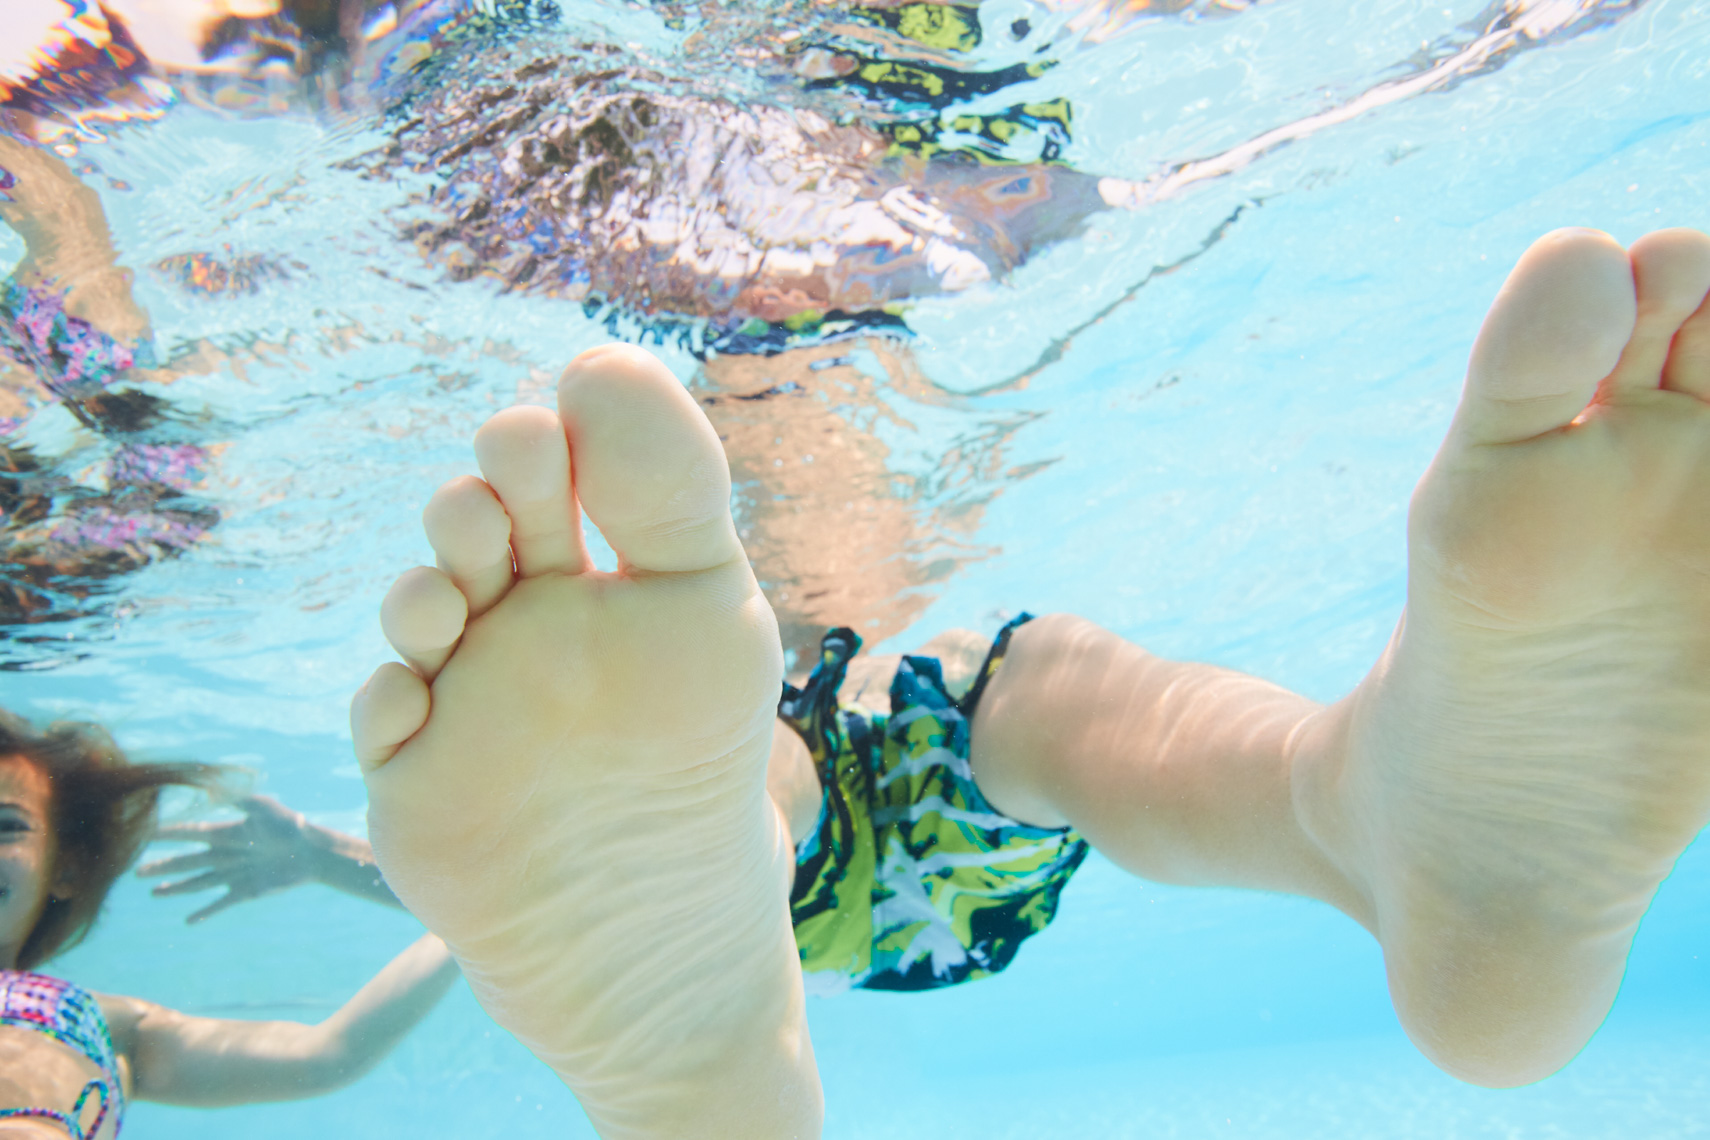 View of boys feet underwater looking up toward water surface